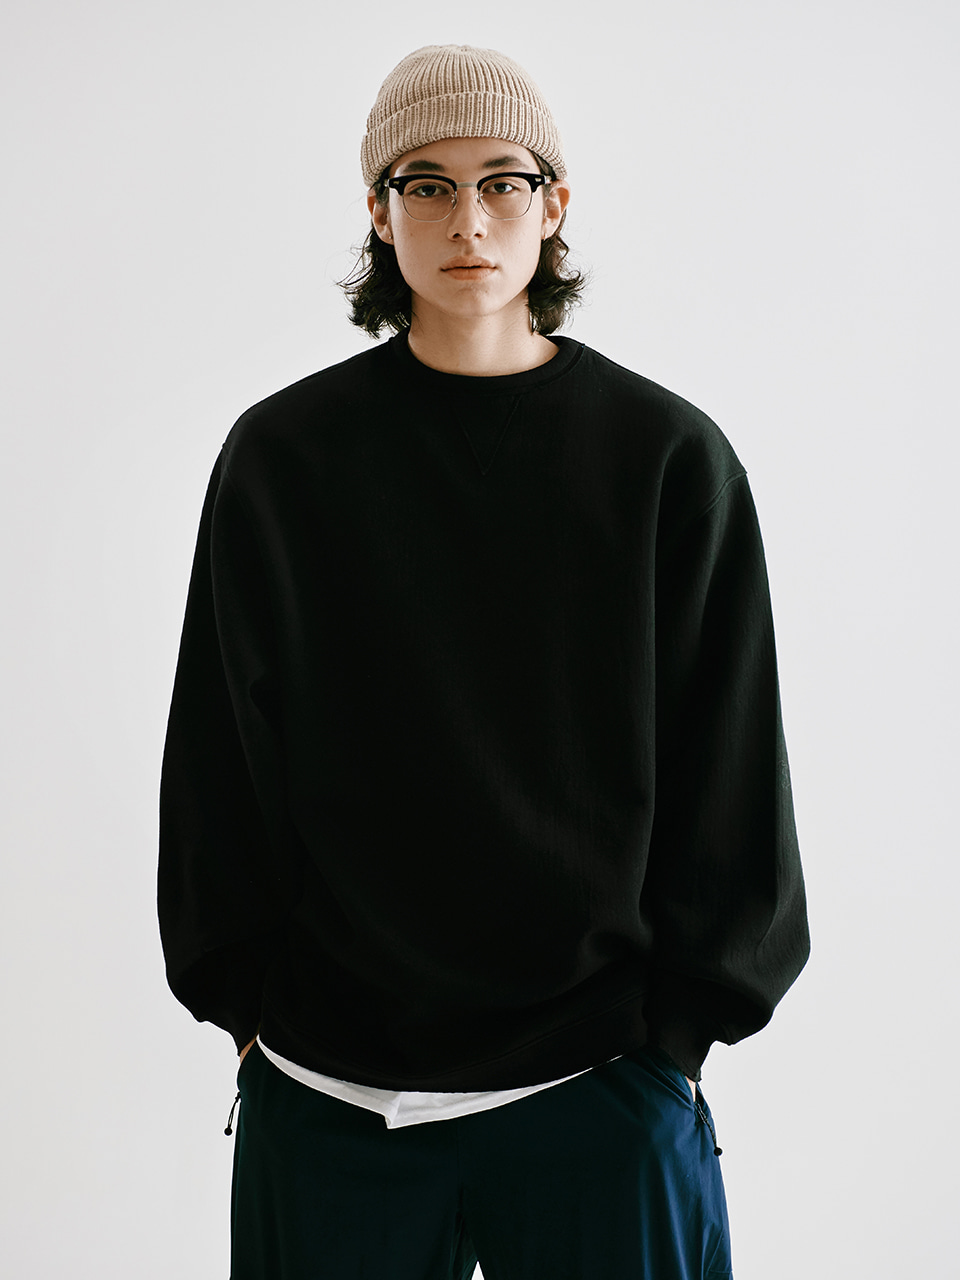 [FW20 Sounds Life] Cut & Tucked Sweatshirt(Black) STEREO-SHOP